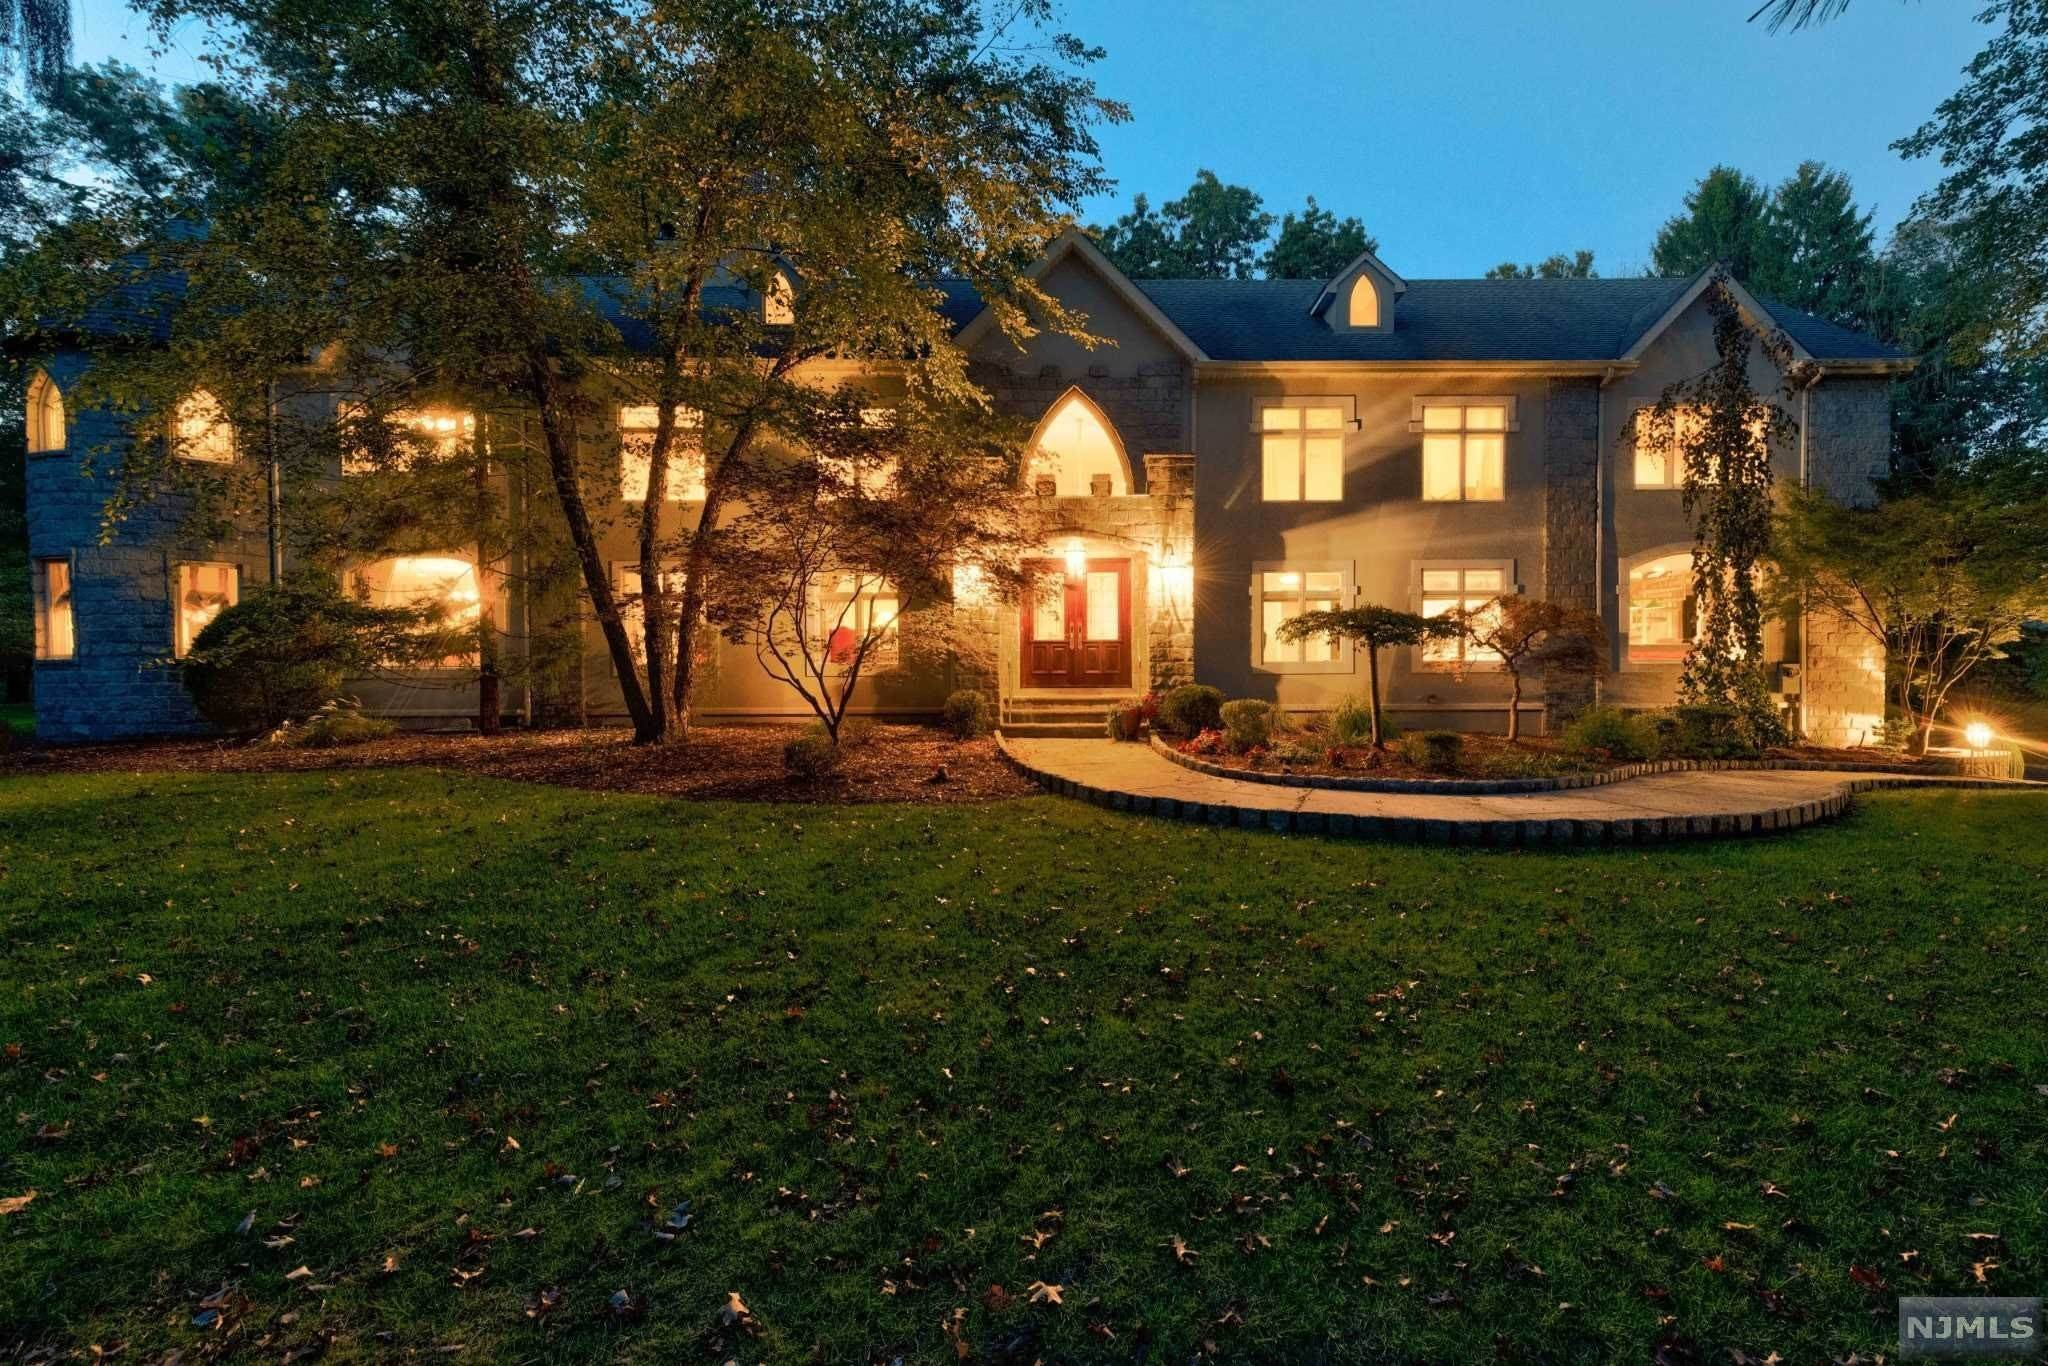 Single Family Home for Sale at 11 Pine Tree Drive Saddle River, New Jersey, 07458 United States